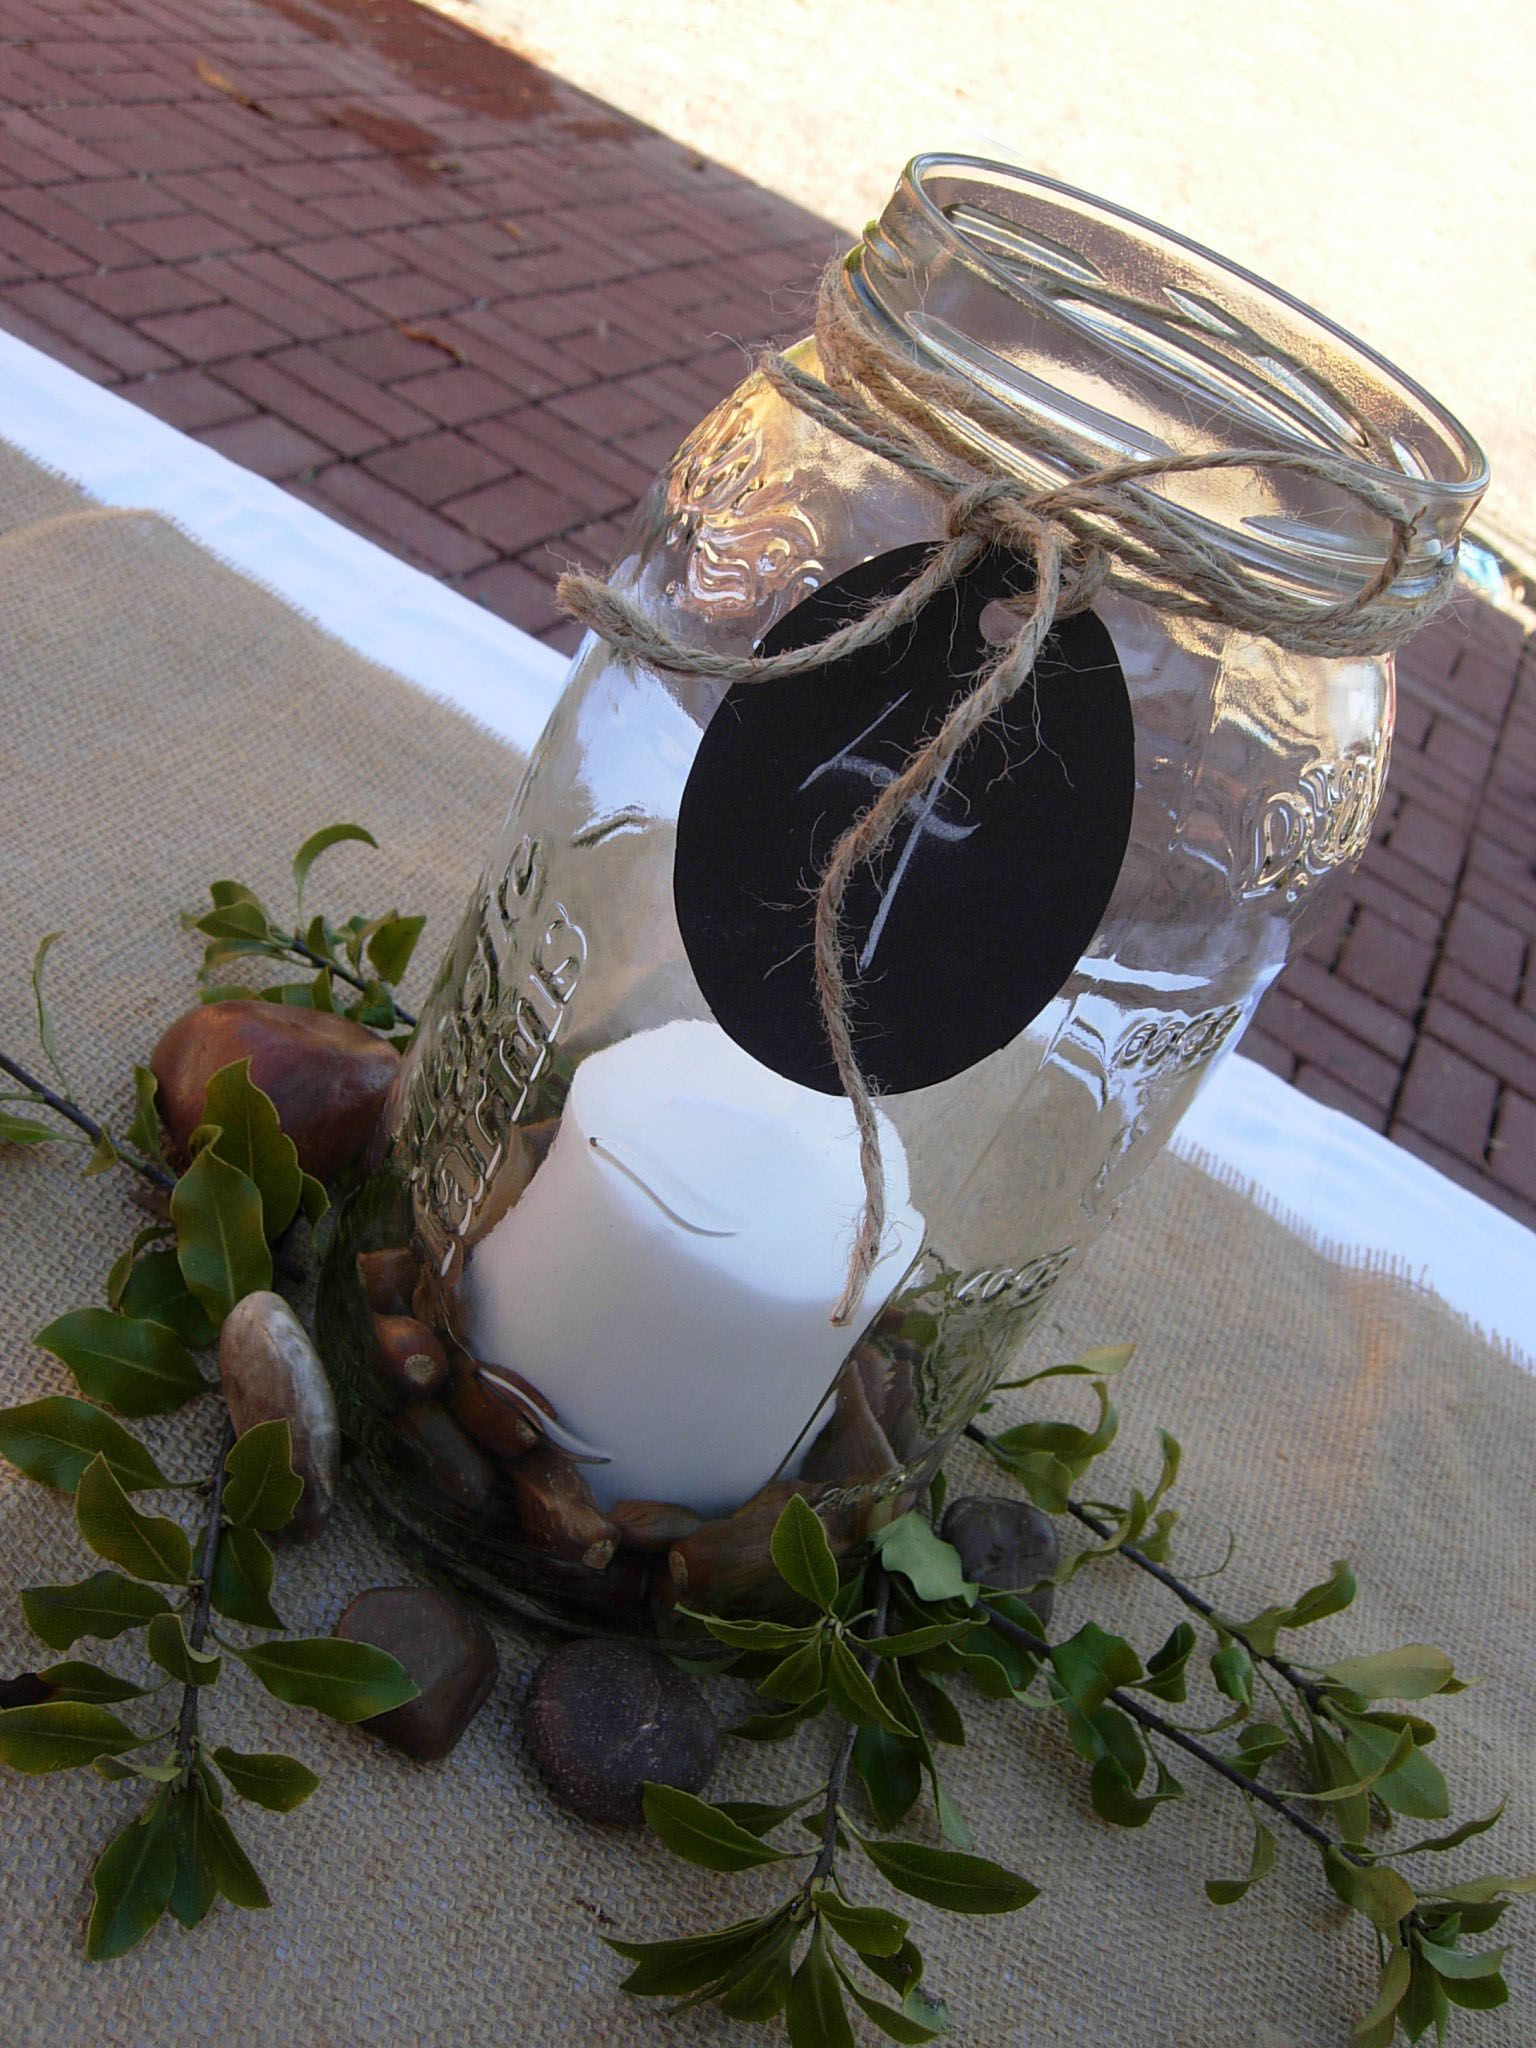 Dr Ideas Table With Pickle Jar Centerpiece With Candle